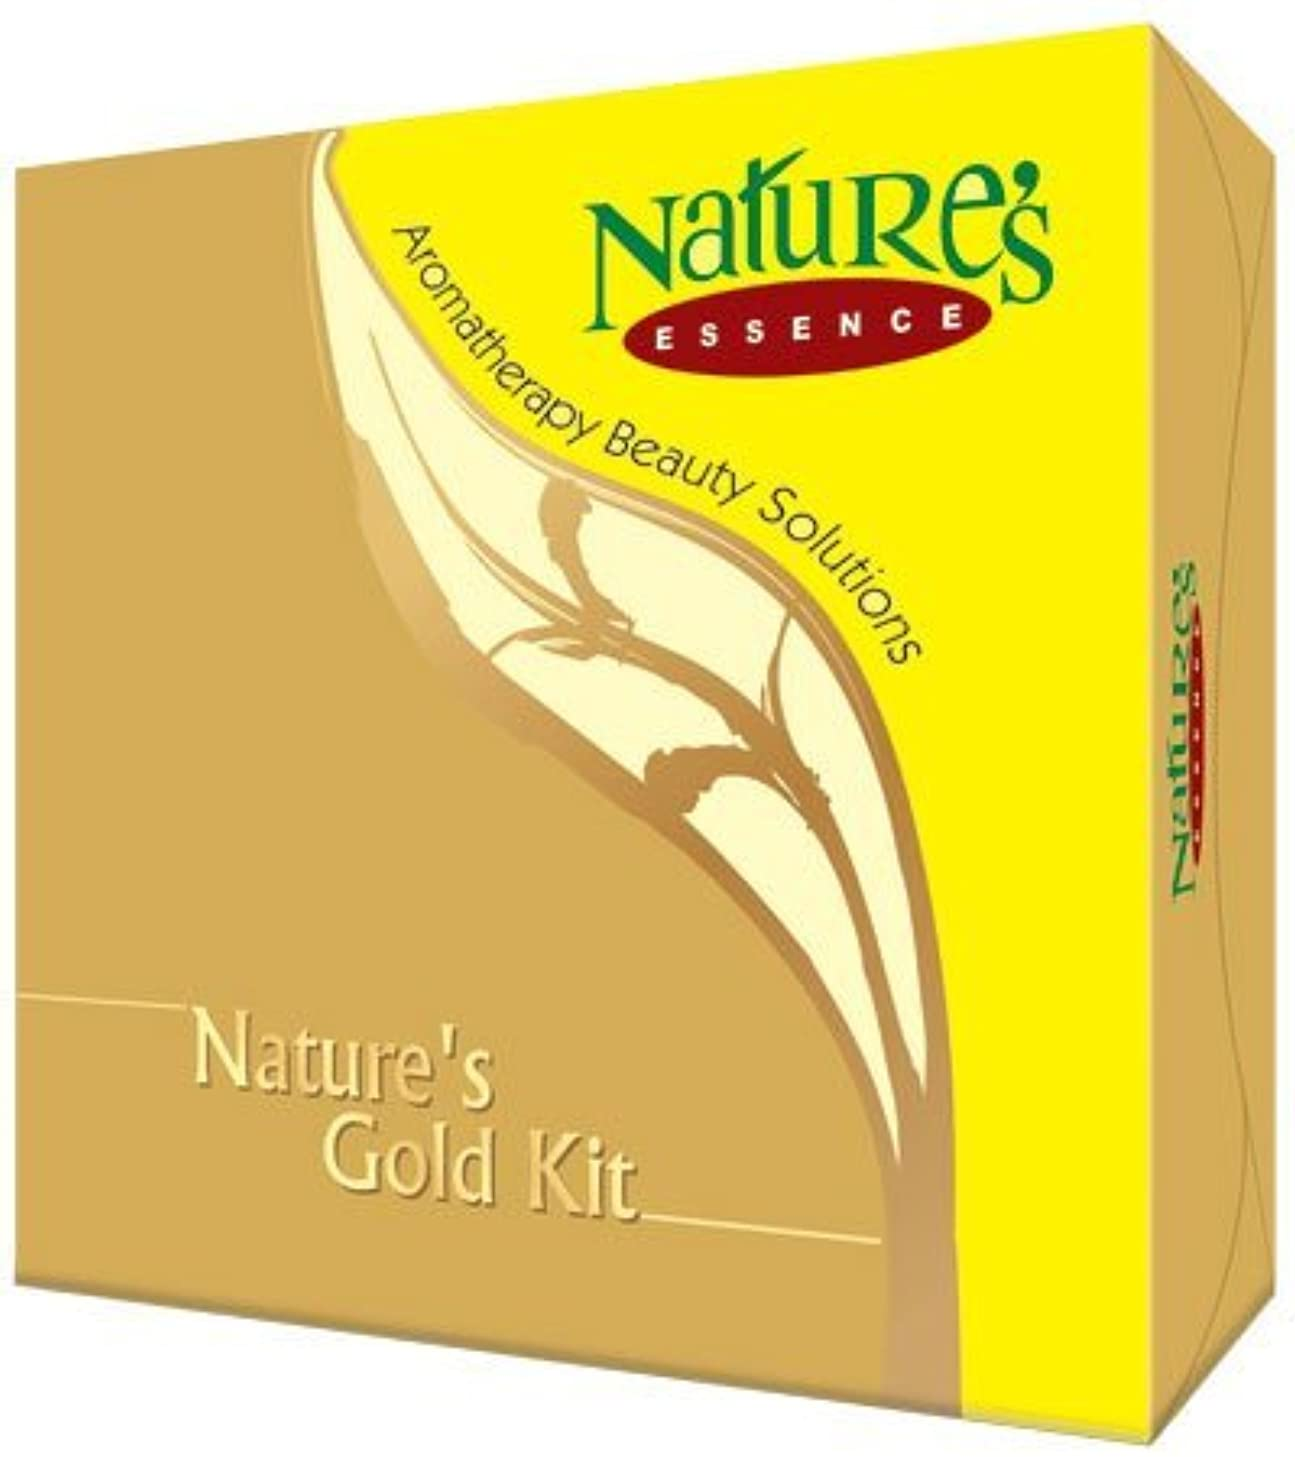 Nature'S essence Gold Kit, 50Gm